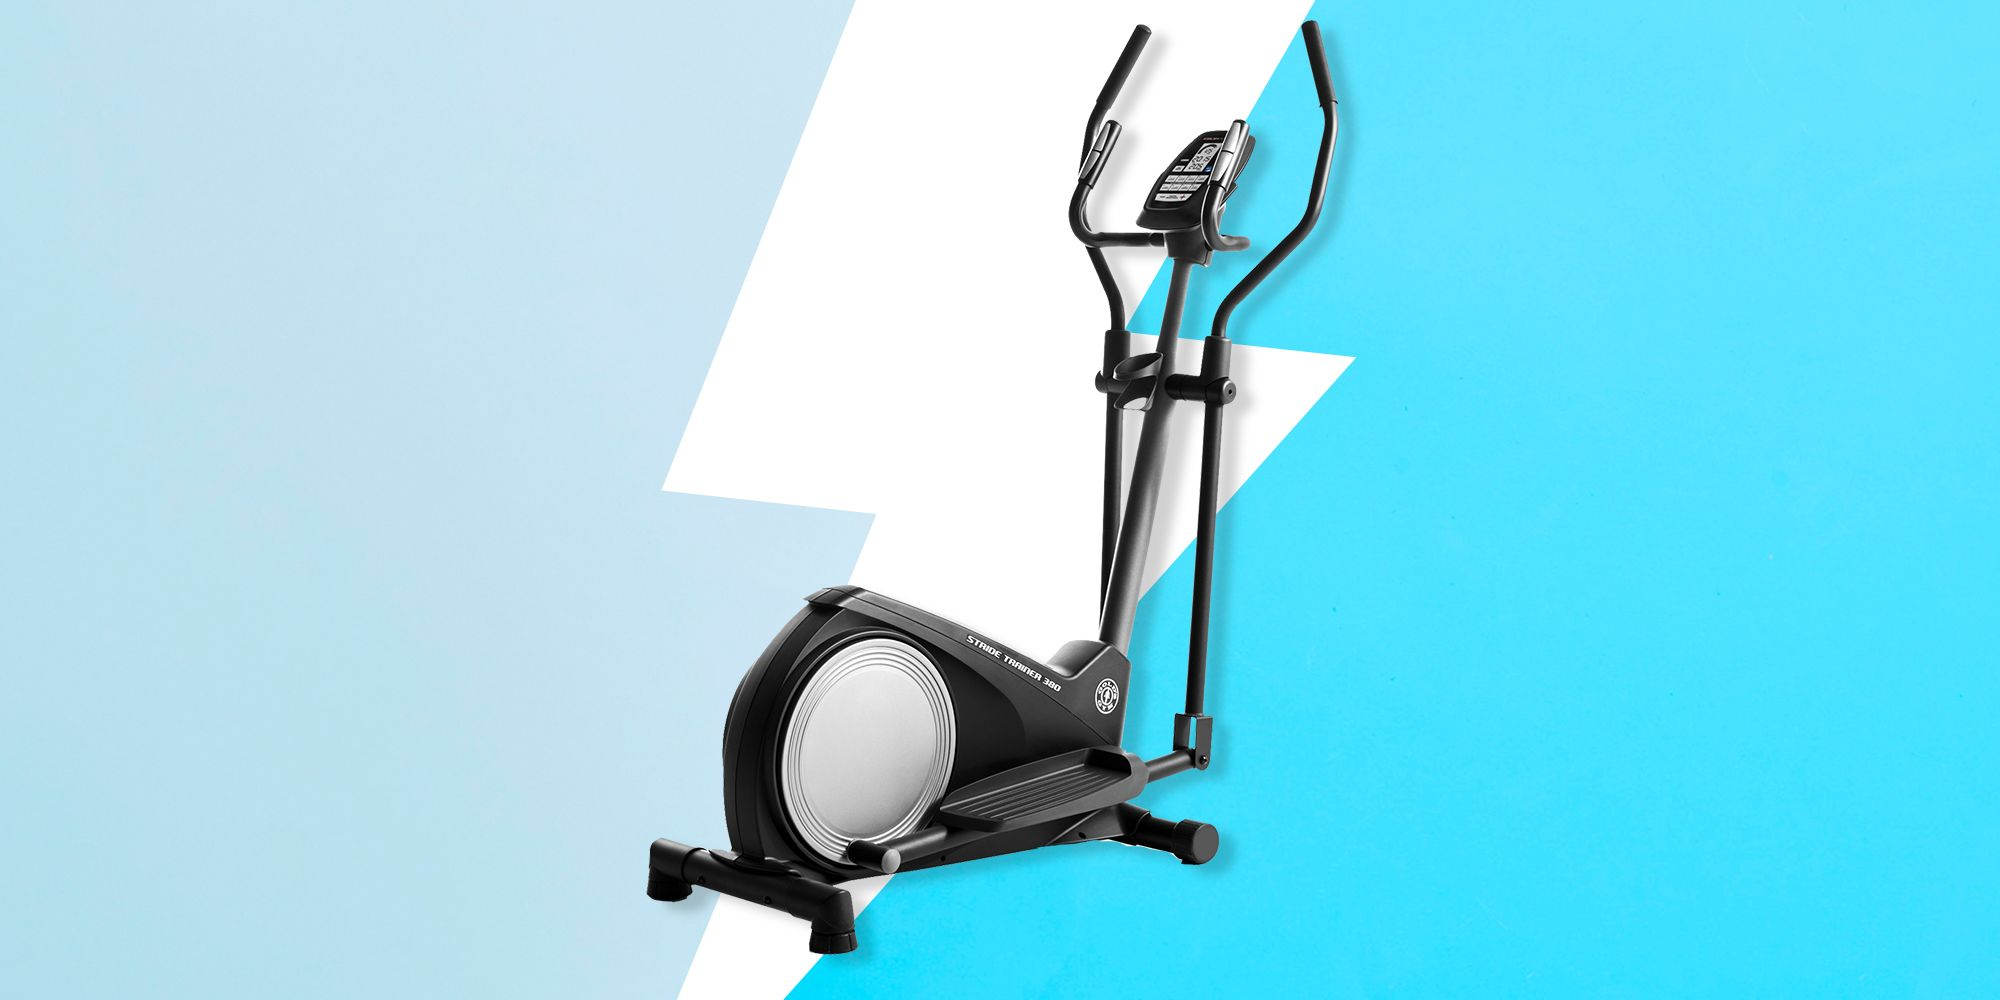 Gold's Gym Elliptical Machines Are On Sale At Walmart For Less Than $200 Right Now